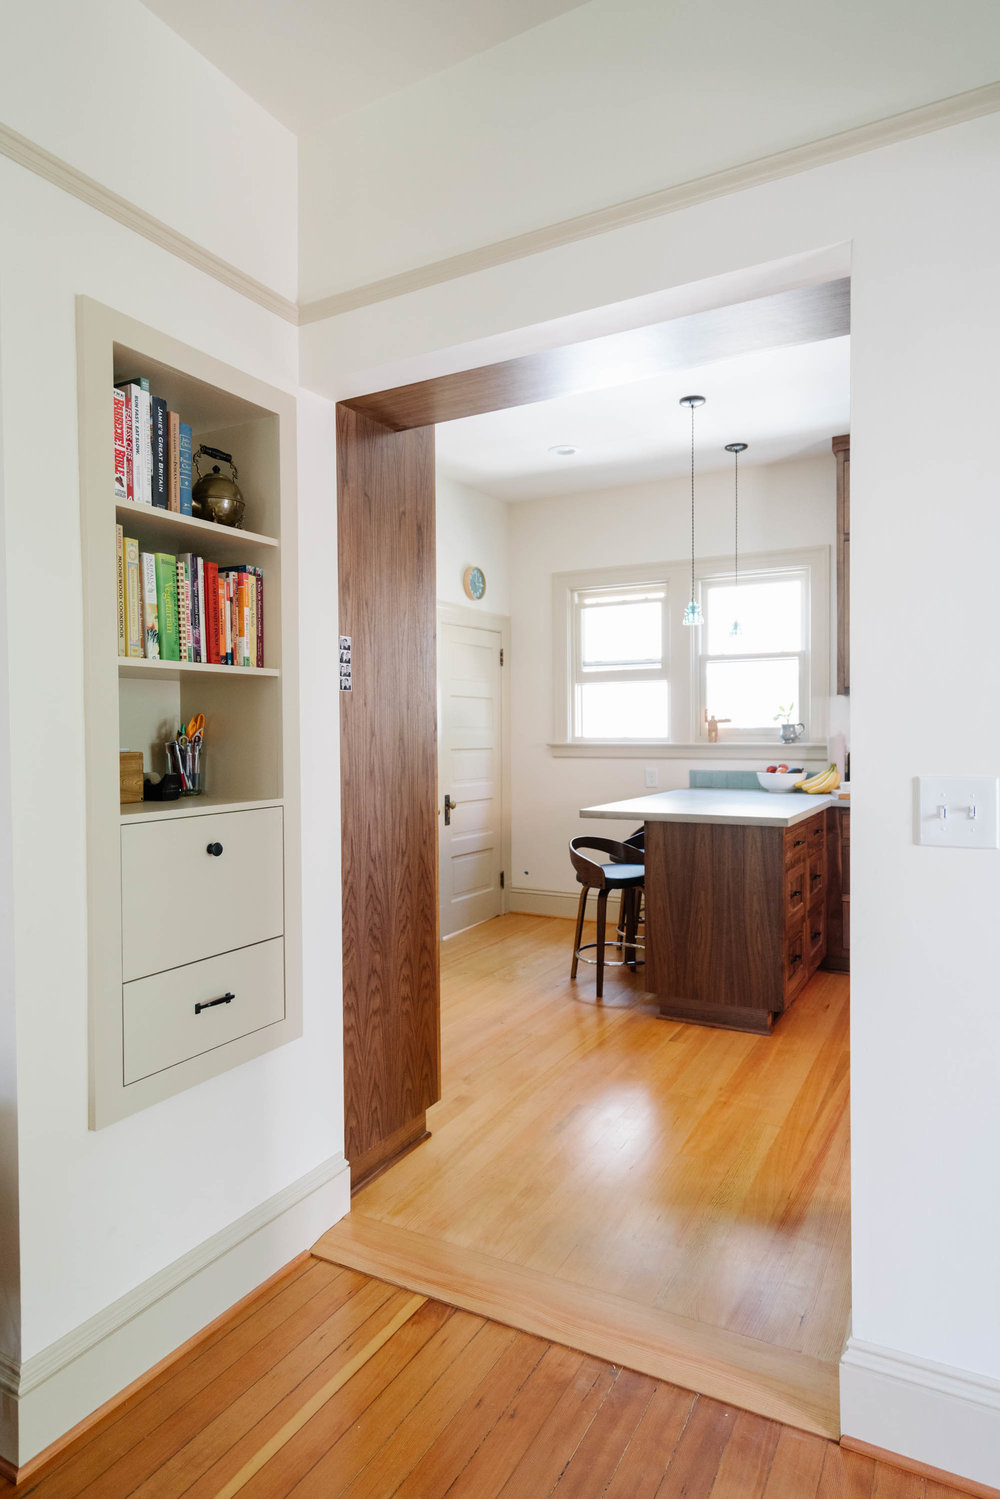 A wide opening from the kitchen into the dining room provides good connectivity. Cabinets and an overhead display shelf flank the passage. Built-ins in unique locations optimize storage.